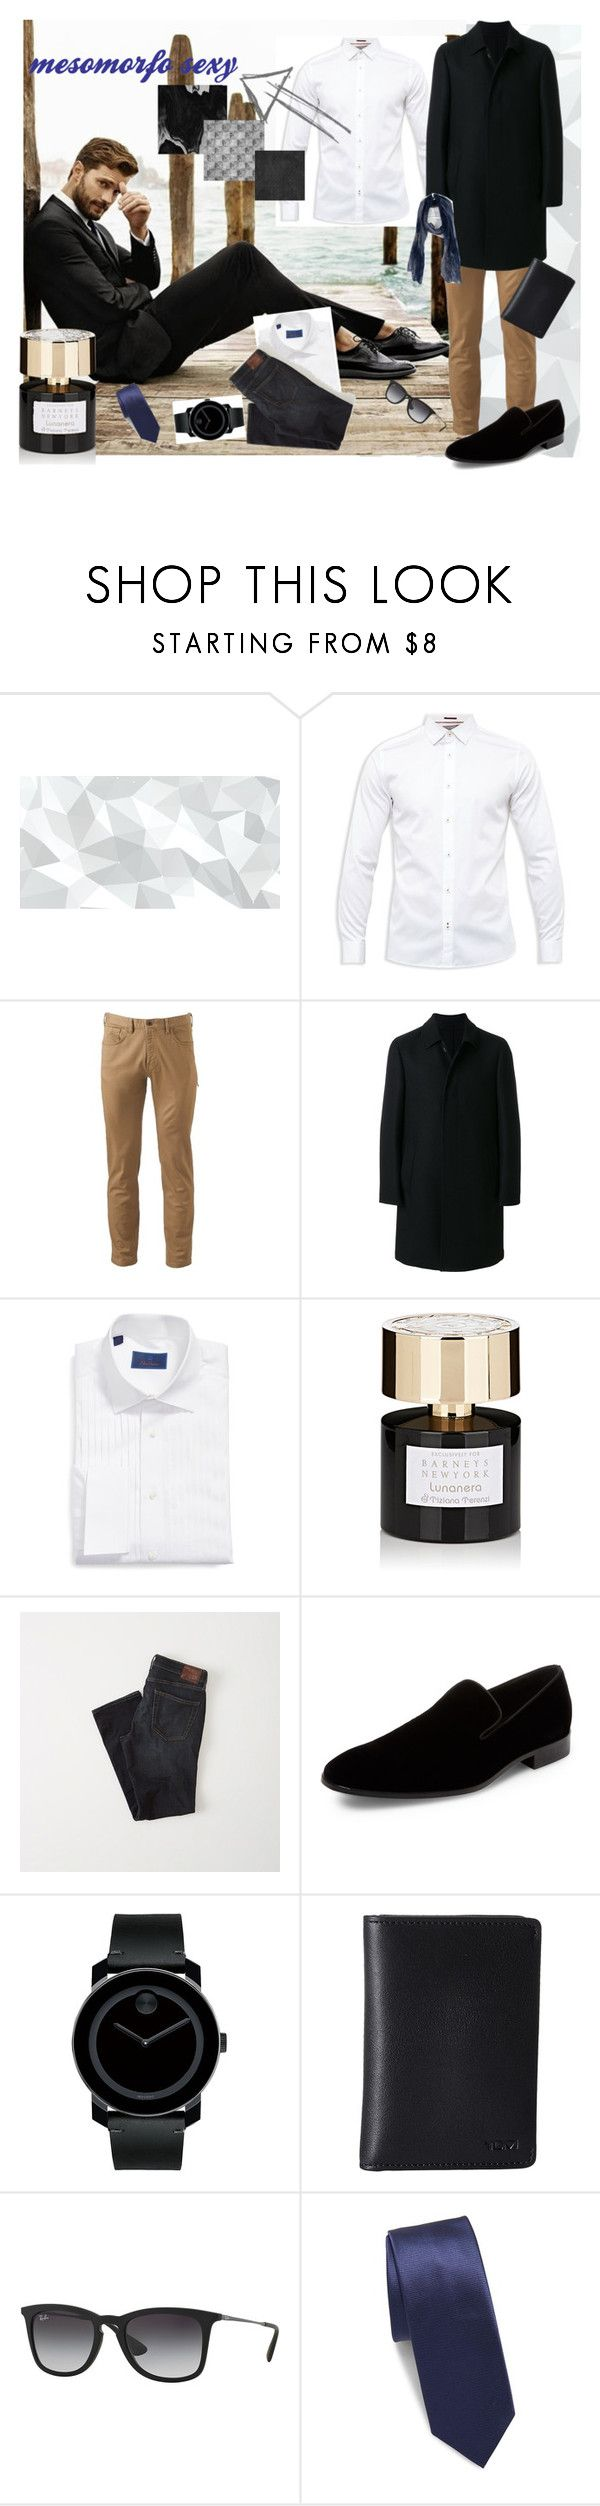 mesomorfo by hangiecruz on Polyvore featuring Ted Baker, DAVID DONAHUE, Dockers, Abercrombie & Fitch, Lardini, Saks Fifth Avenue, Movado, Ray-Ban, Tumi and Salvatore Ferragamo